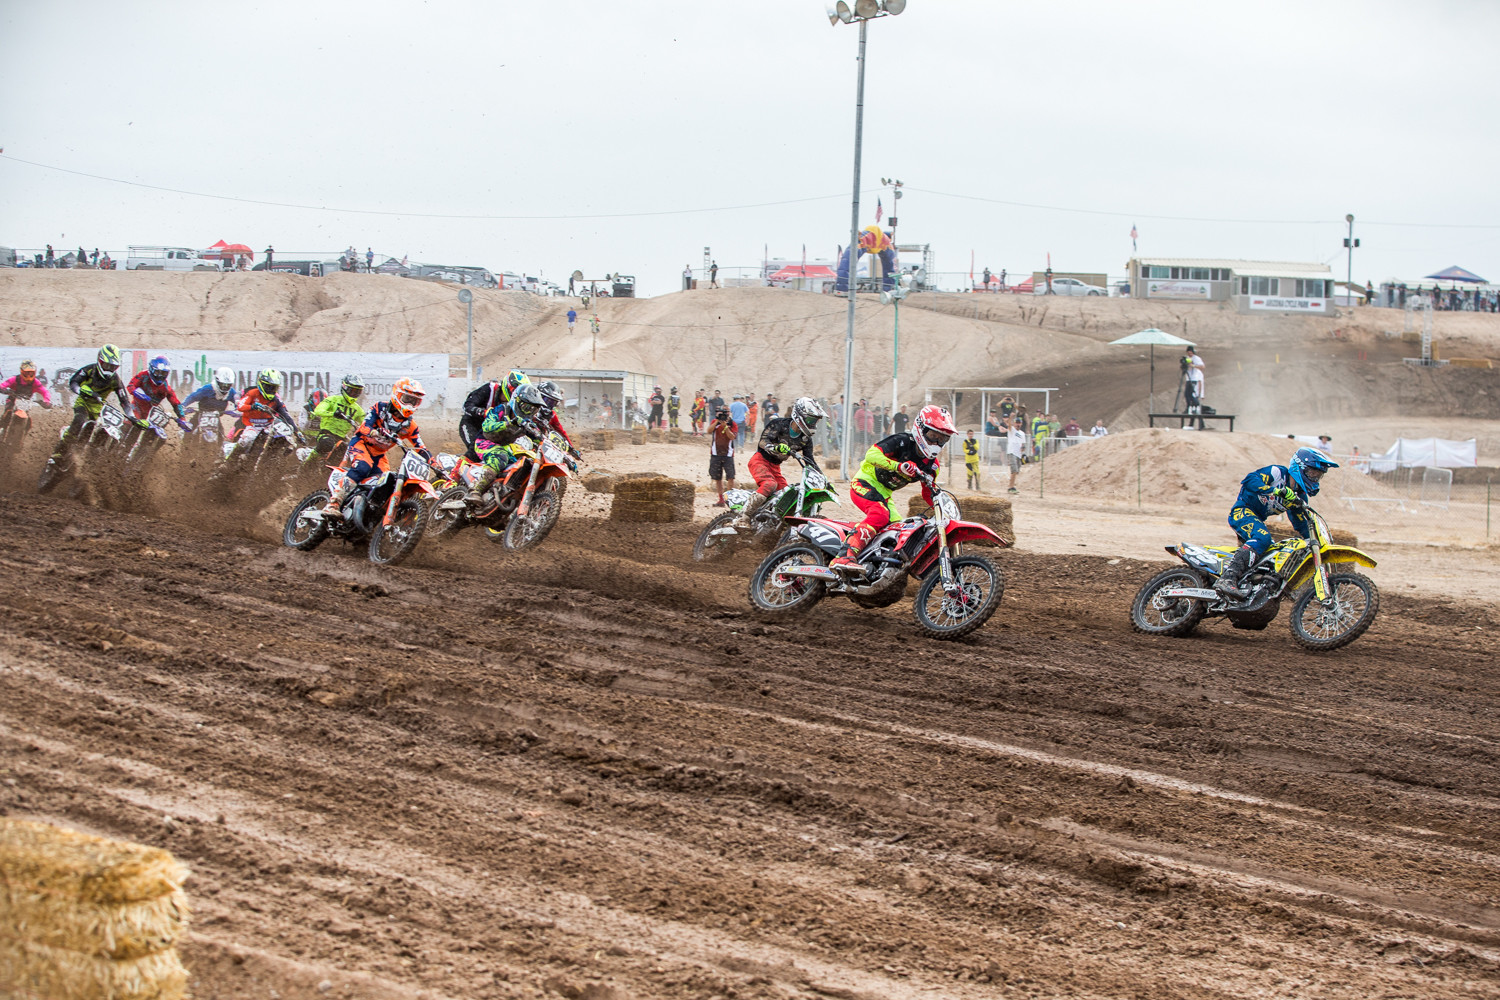 250 B Start - Gallery: 2017 AMA Arizona Open Amateur National - Friday - Motocross Pictures - Vital MX